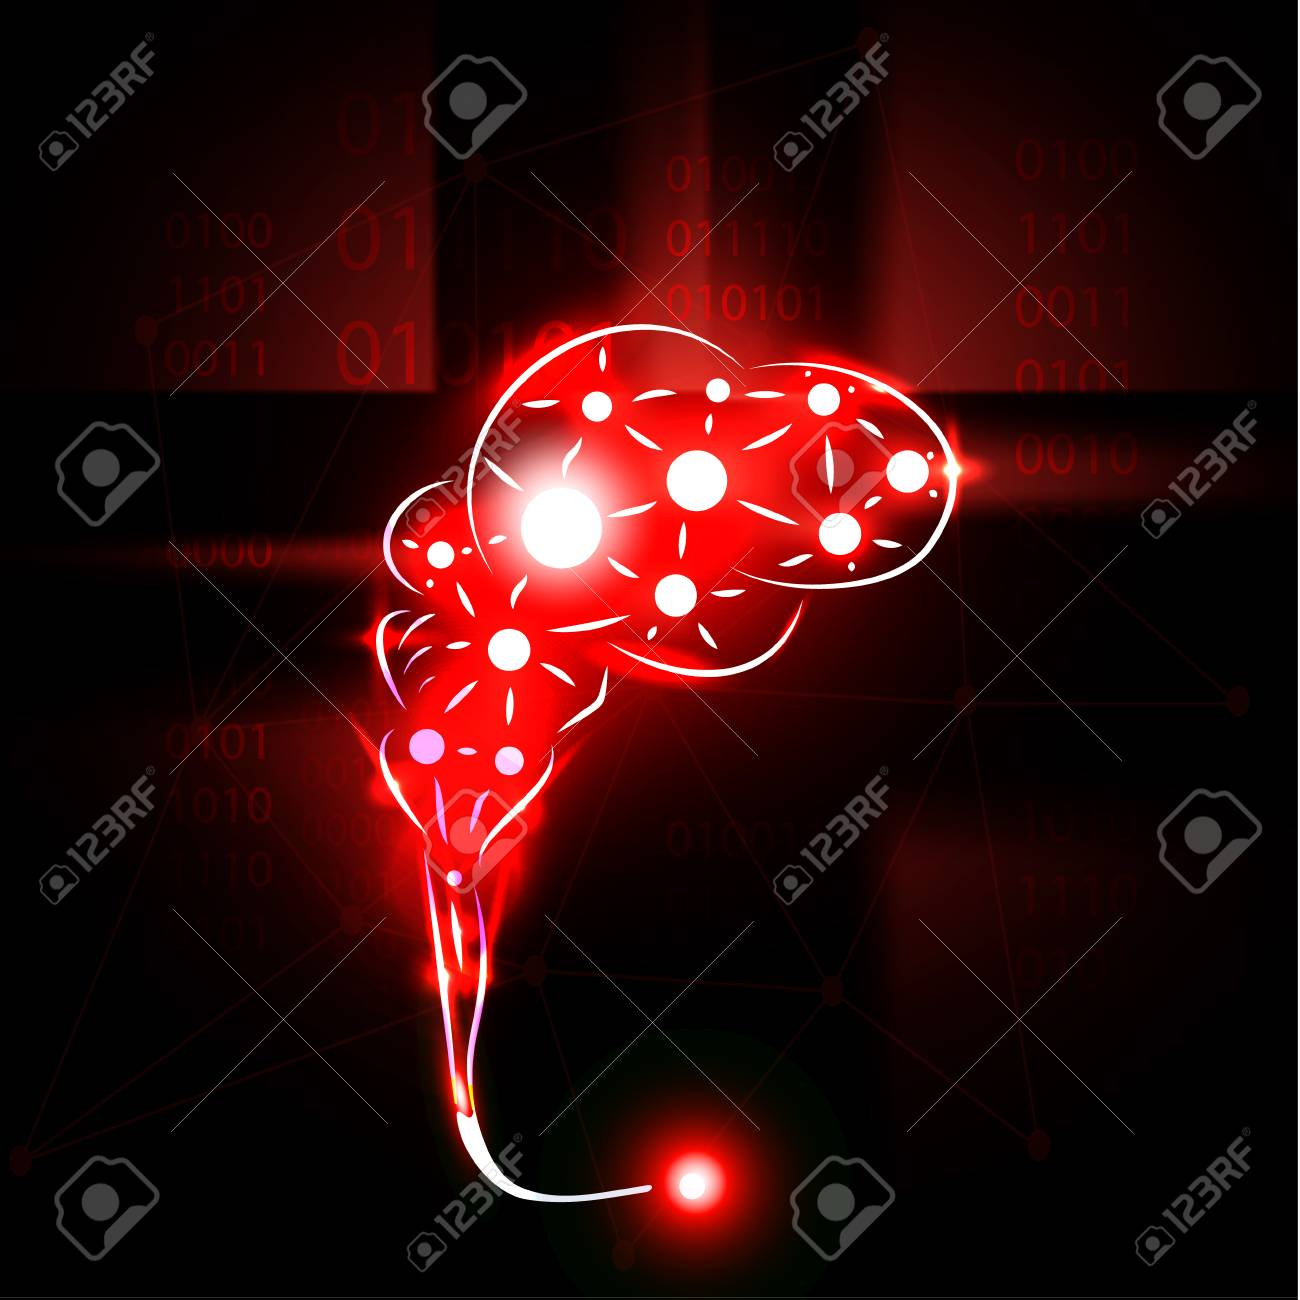 Abstract Human Brain With Red Flaming Point Neon Art